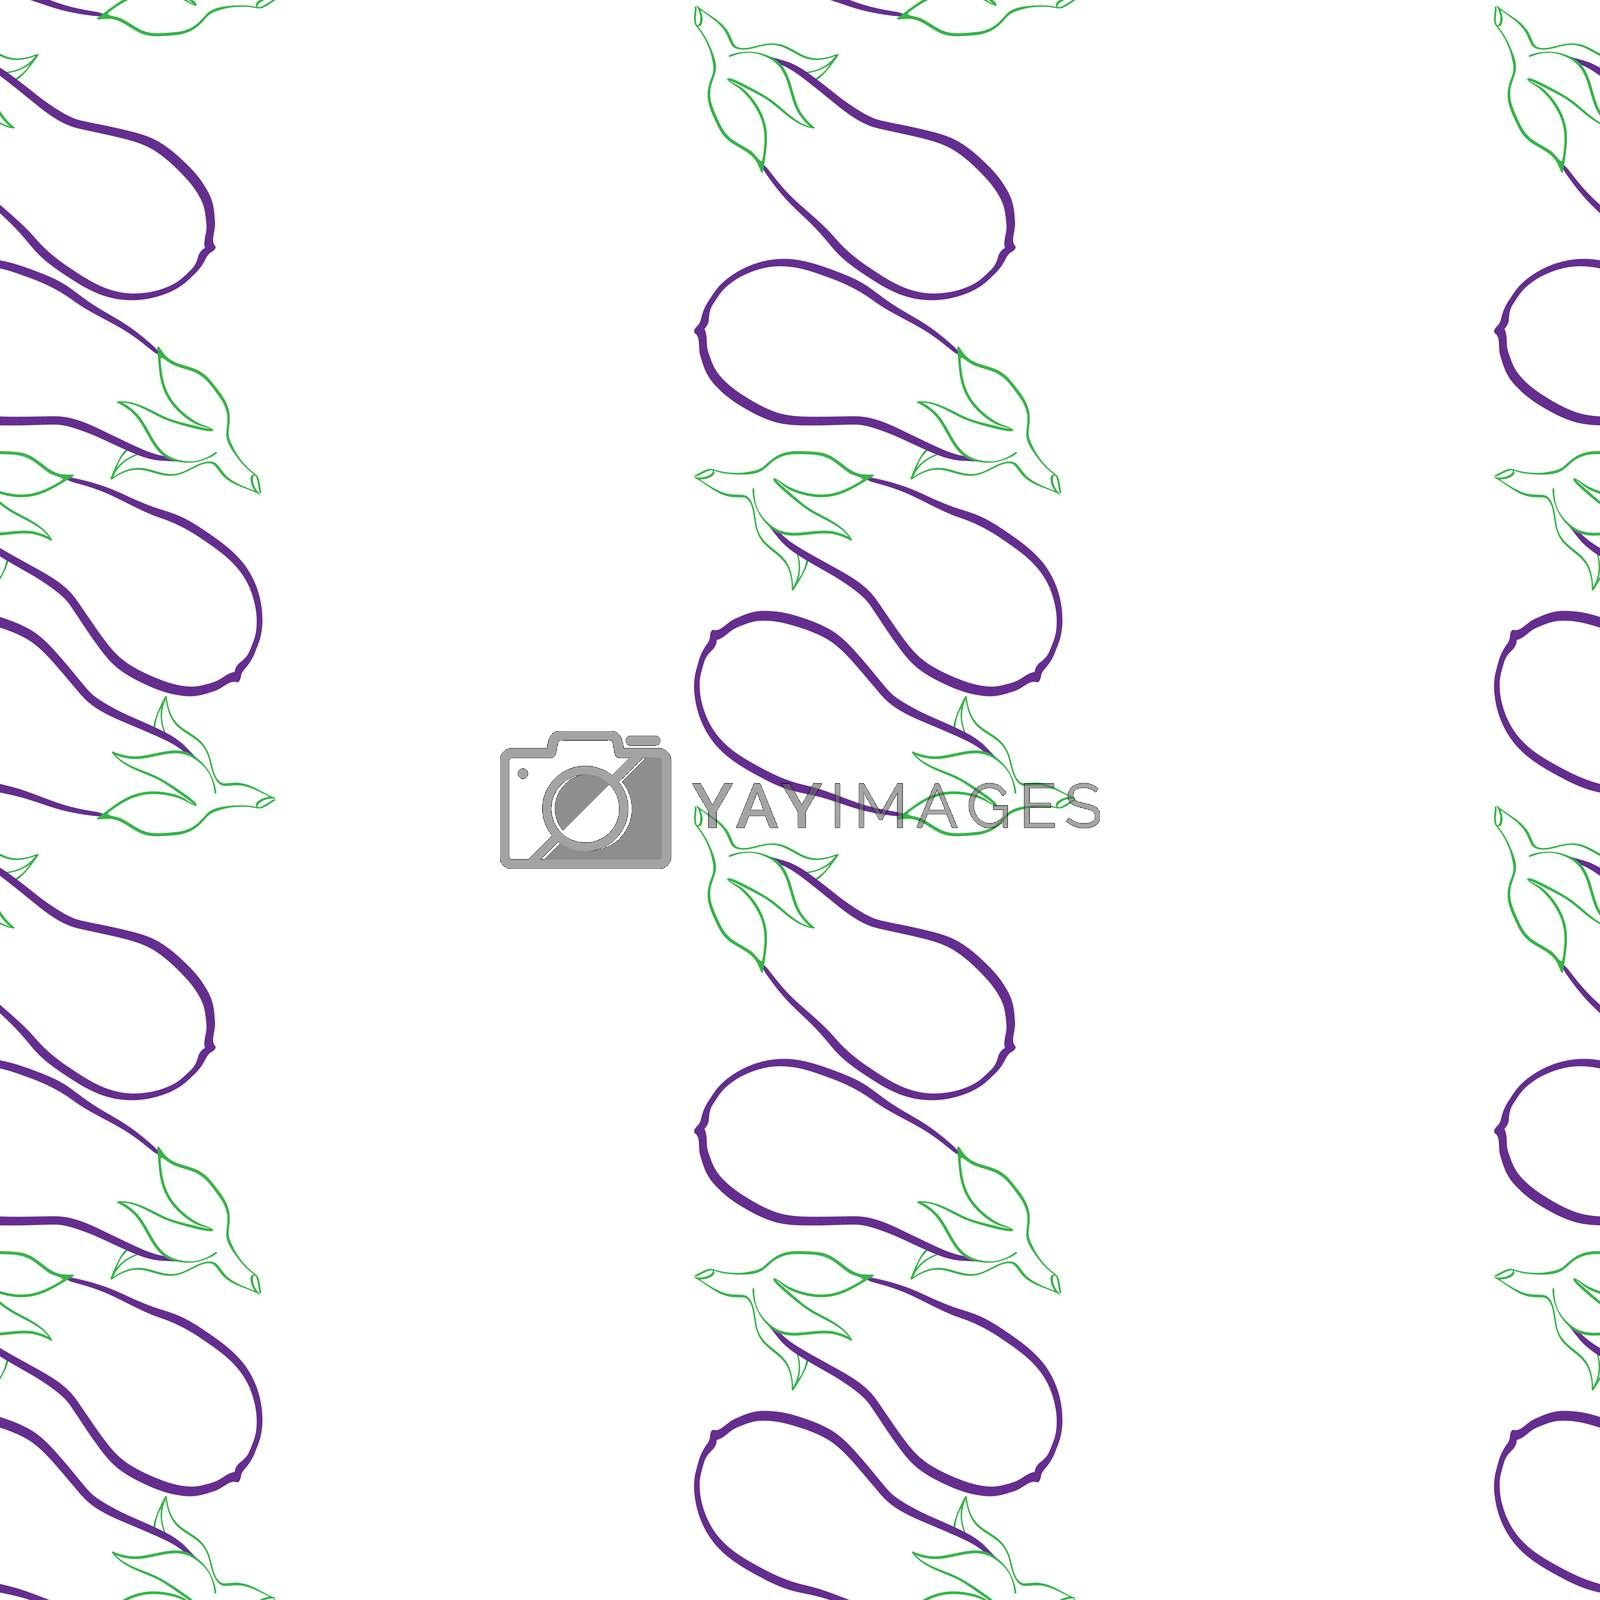 Seamless pattern with eggplants, doodle illustration over white